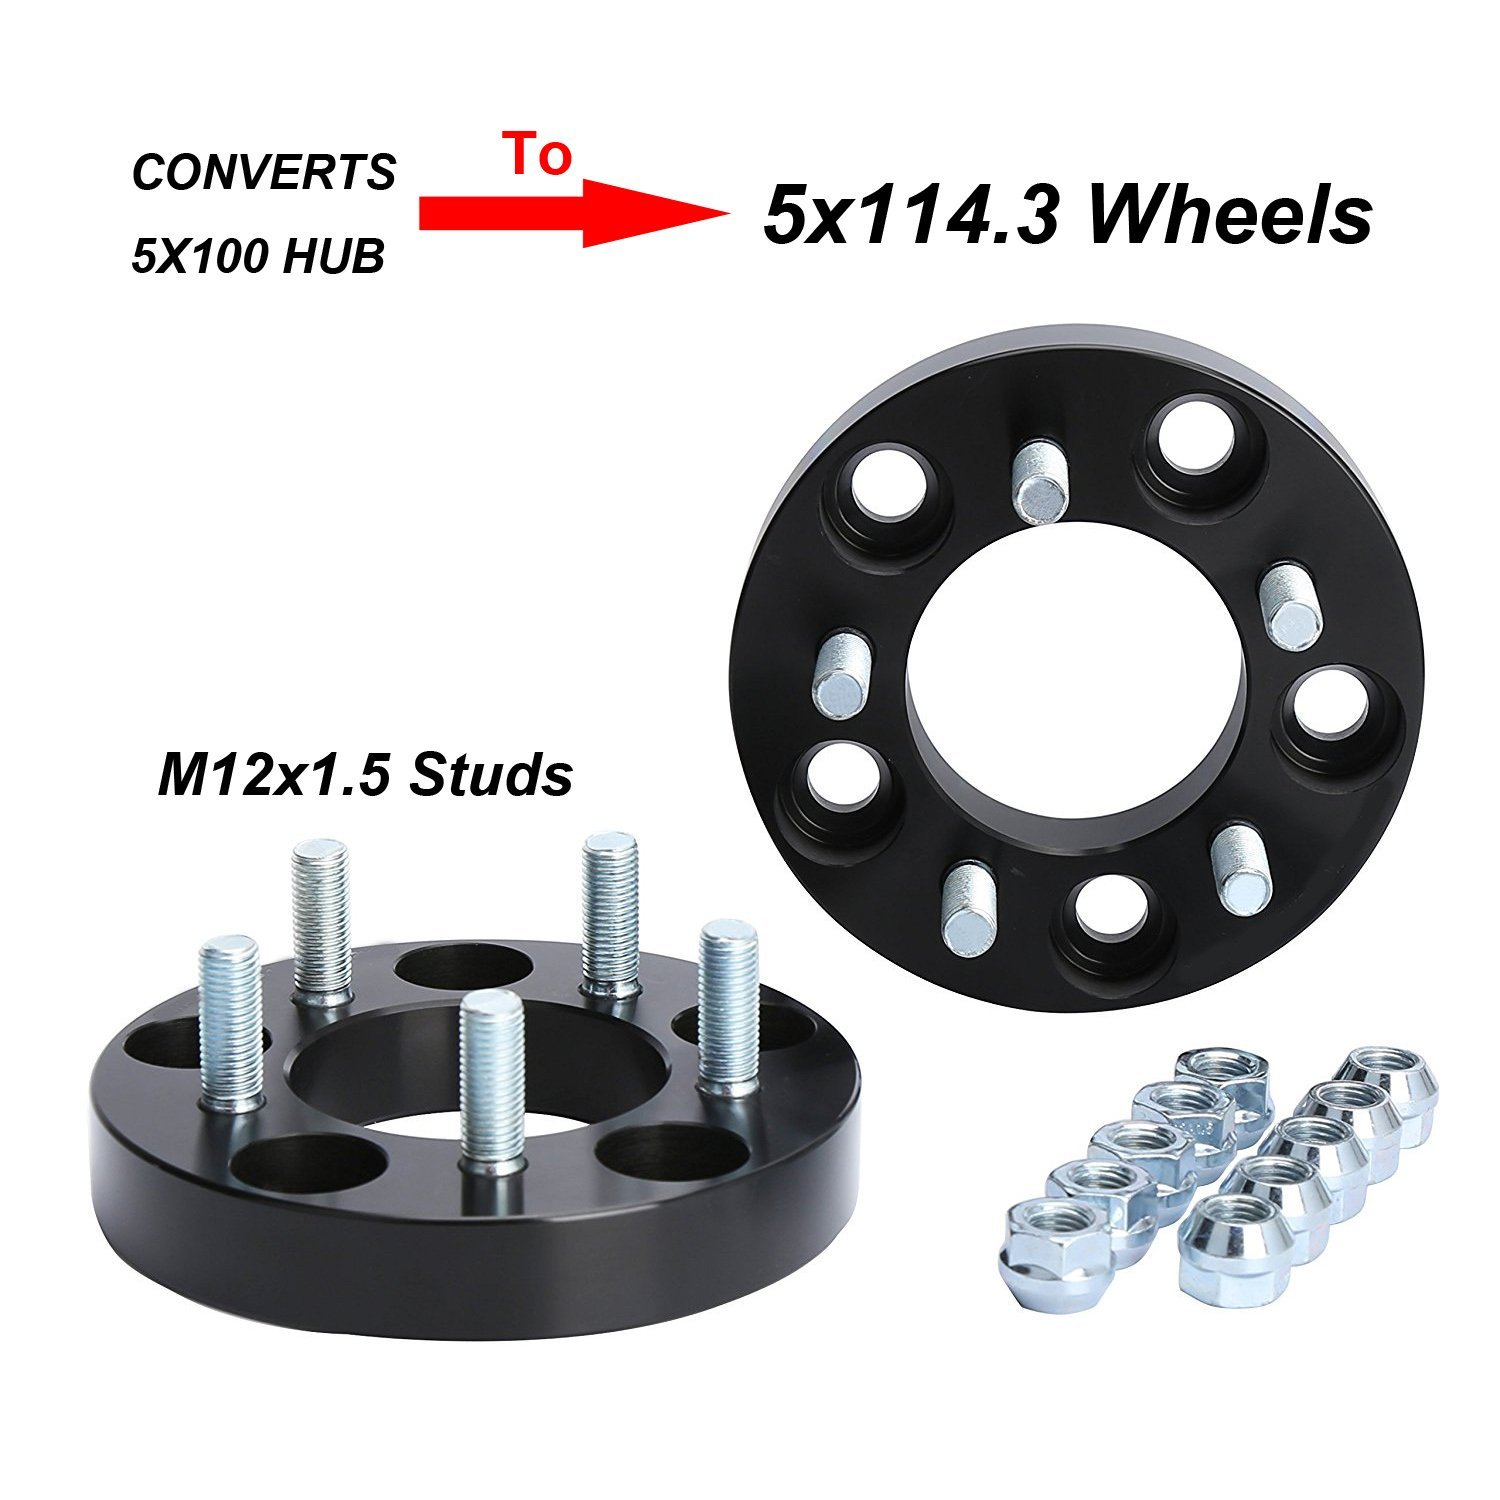 KSP Chang Bolt Pattern 25mm Thread Pitch 12x1.5mm Hub Bore 64.1mm Wheel Spacers for Chevy Cavalier Lexus CT200H Scion Toyota Camry Celica Corolla Mat Goldenlion 5X100 to 5x114.3 Wheel Adapters for Toyota Dodge